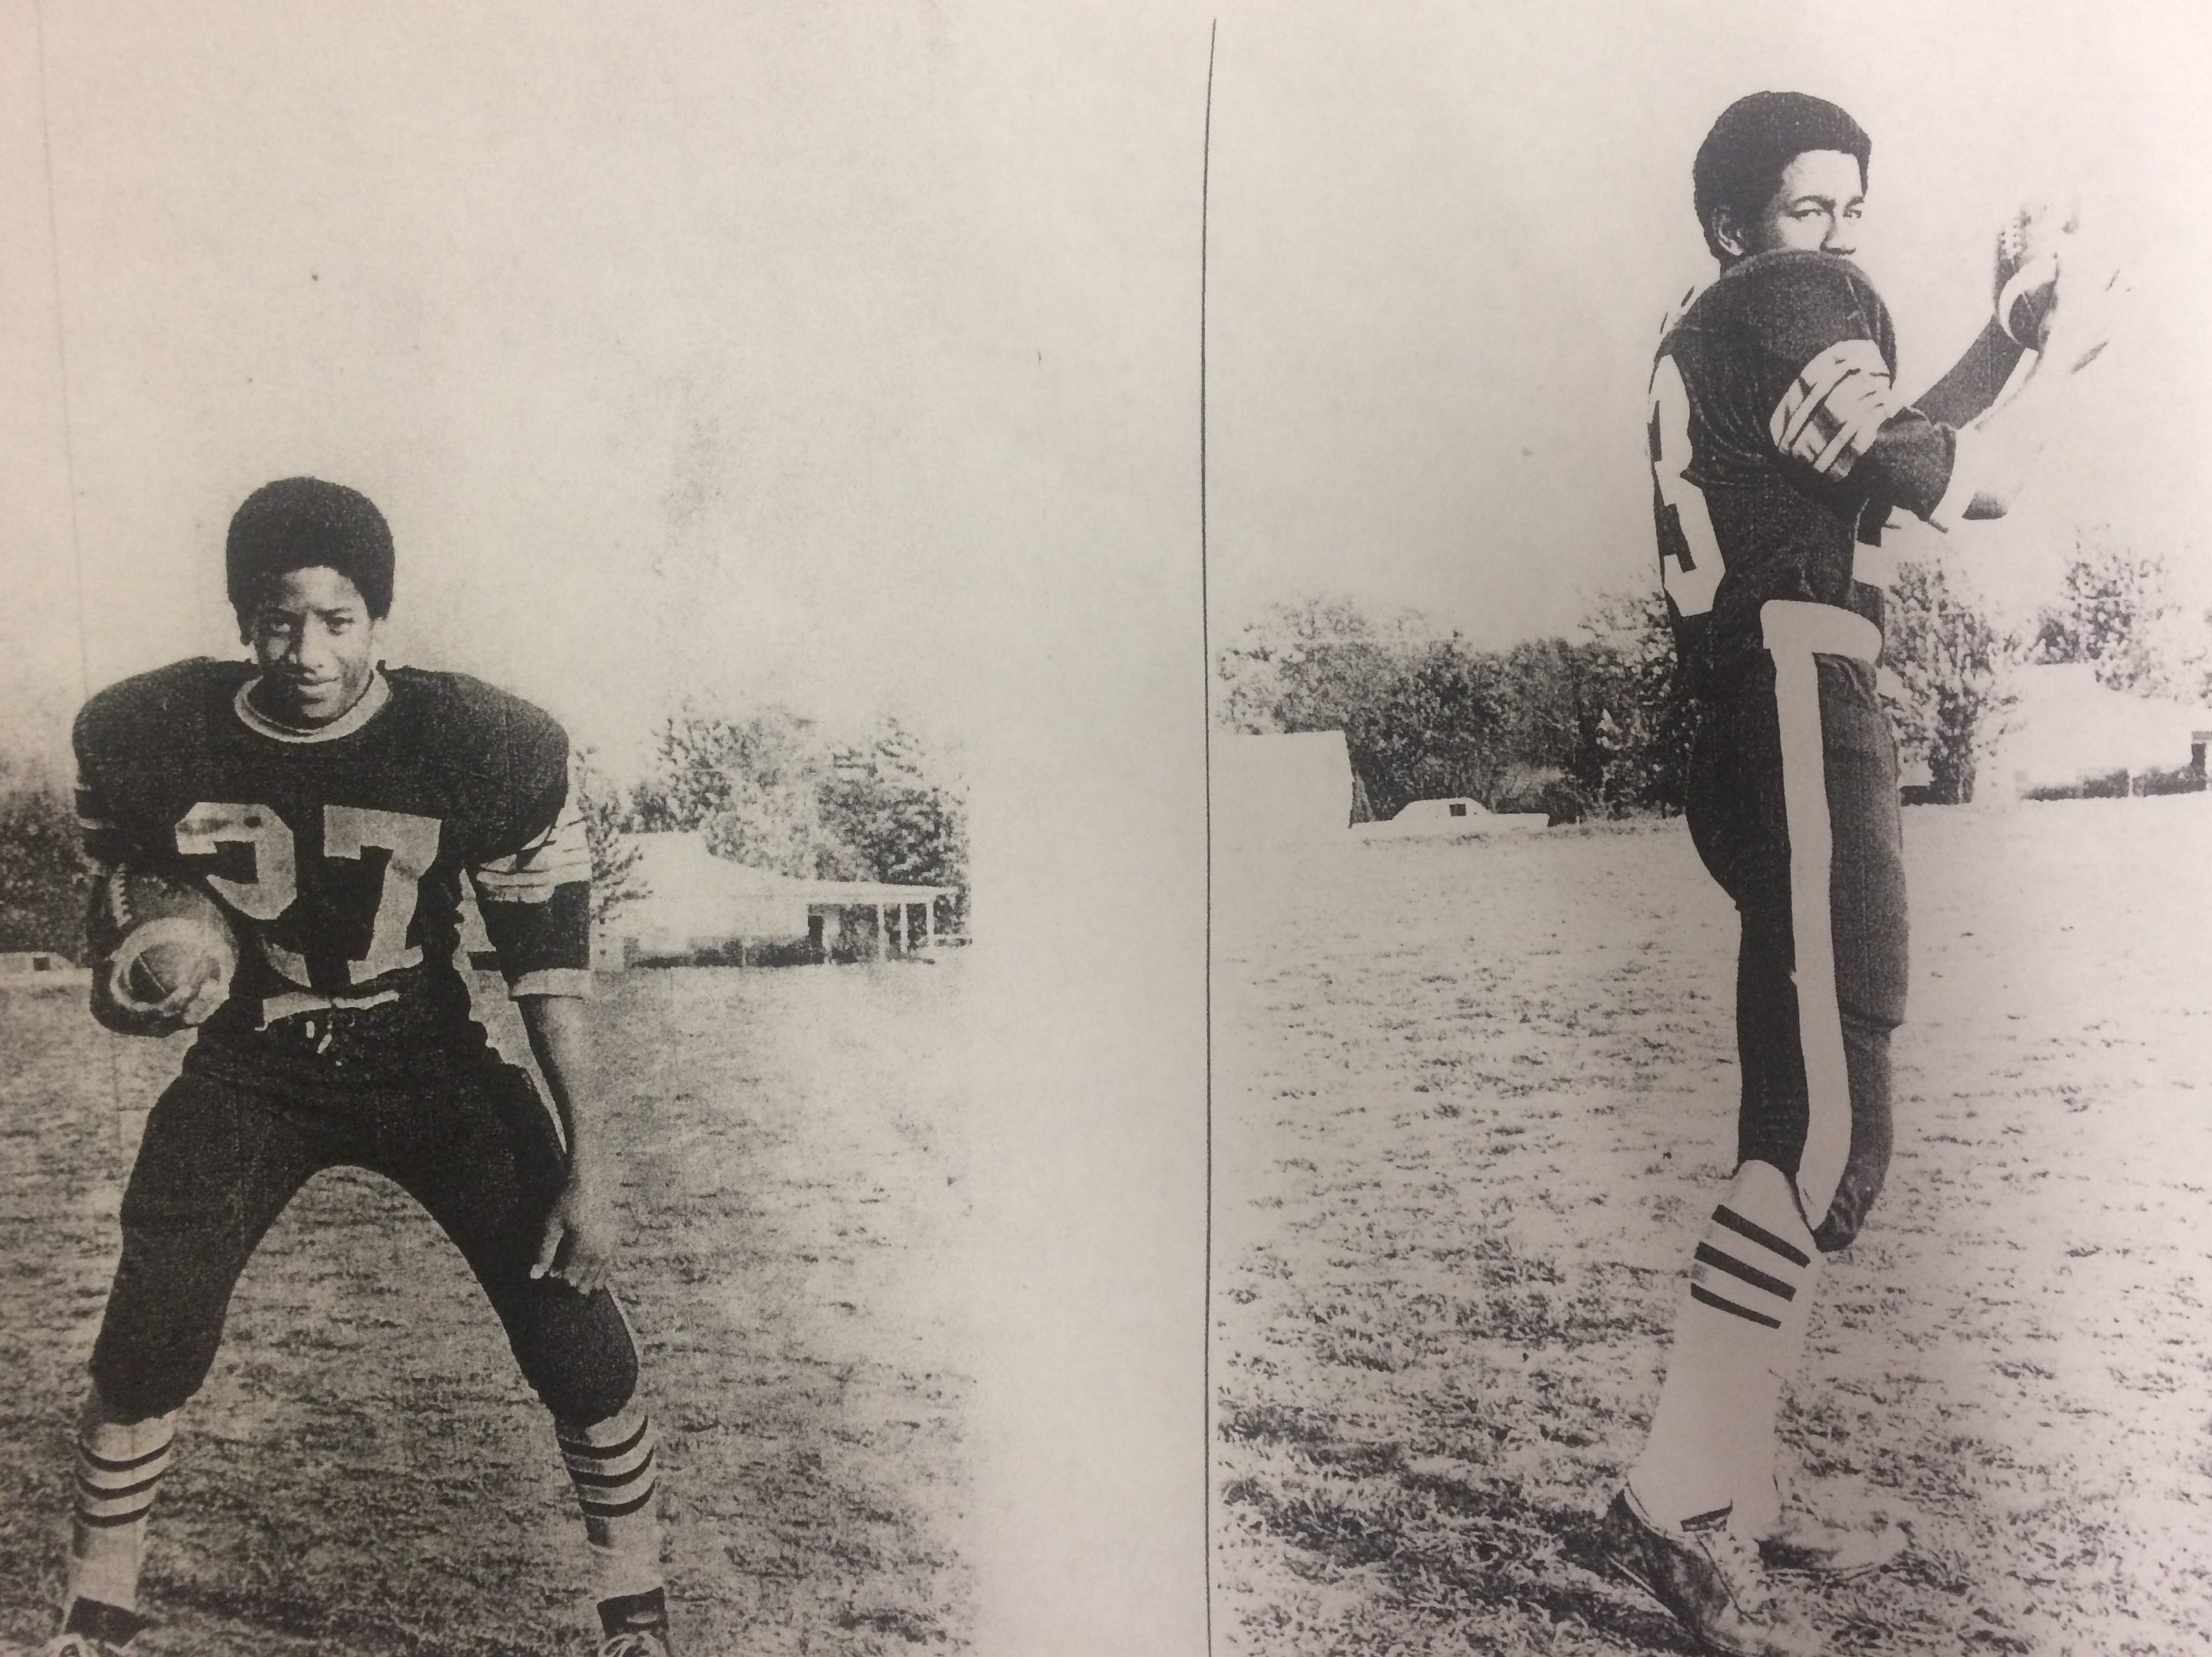 Gary Lauderdale (left) and Dennis Lauderdale, Sr. (right), who are brothers, are pictured in the old Union High School football uniforms before changing over to Gallatin High School in 1970-71.